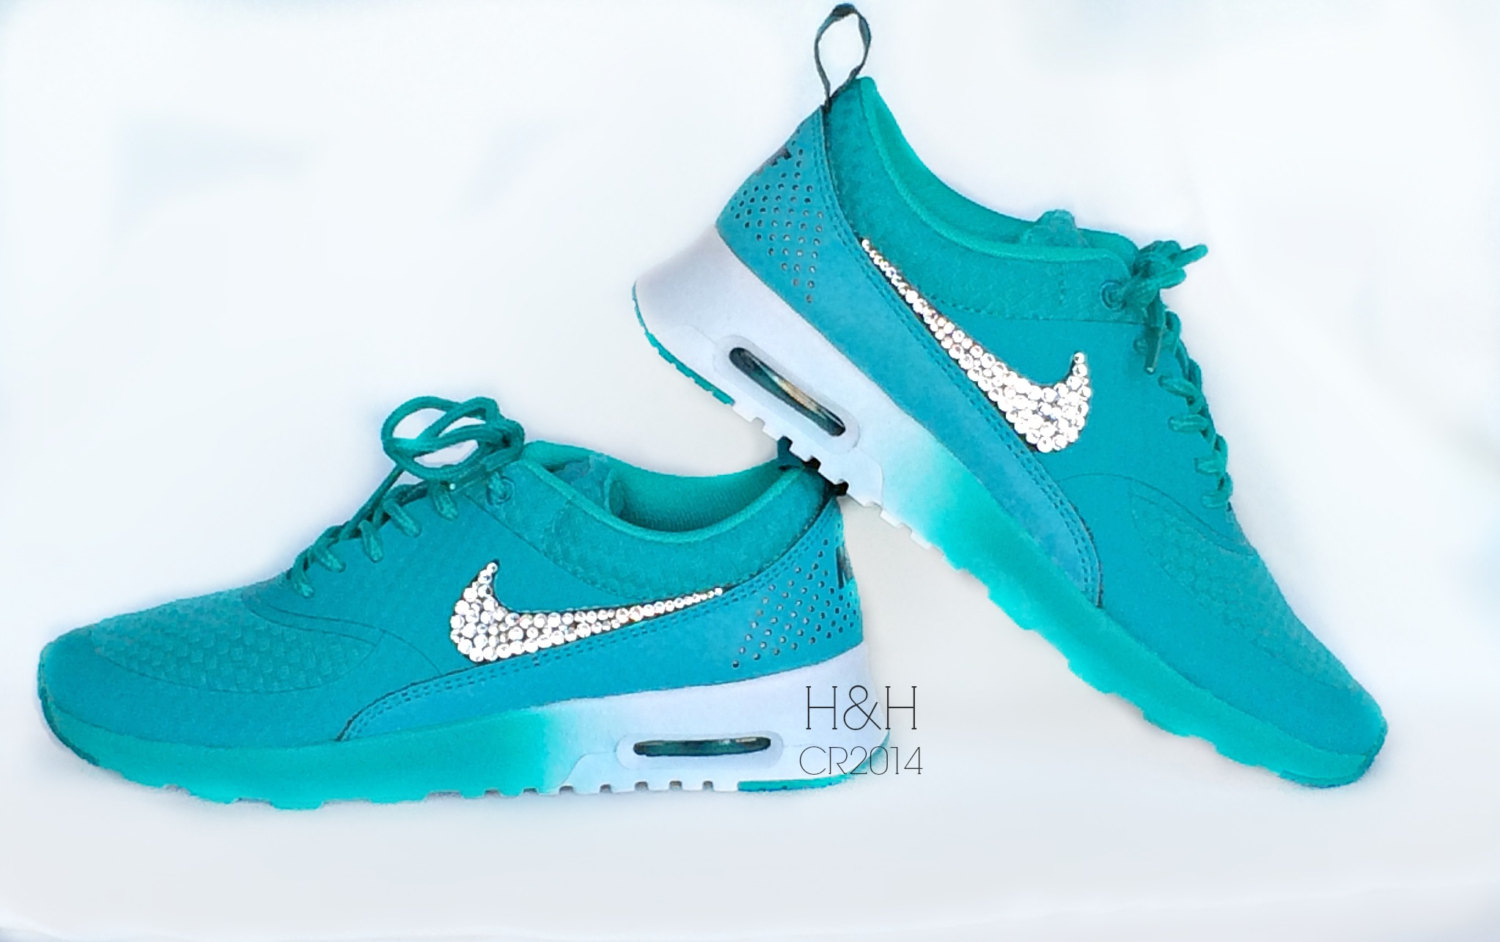 promo code 61673 946e6 shoes, blue, green, white, nike, air max, lovely, air max, ombre, tumblr, air  max, swoosh, purple, turquoise, trainers, nike sneakers, neon, gradient, air  ...